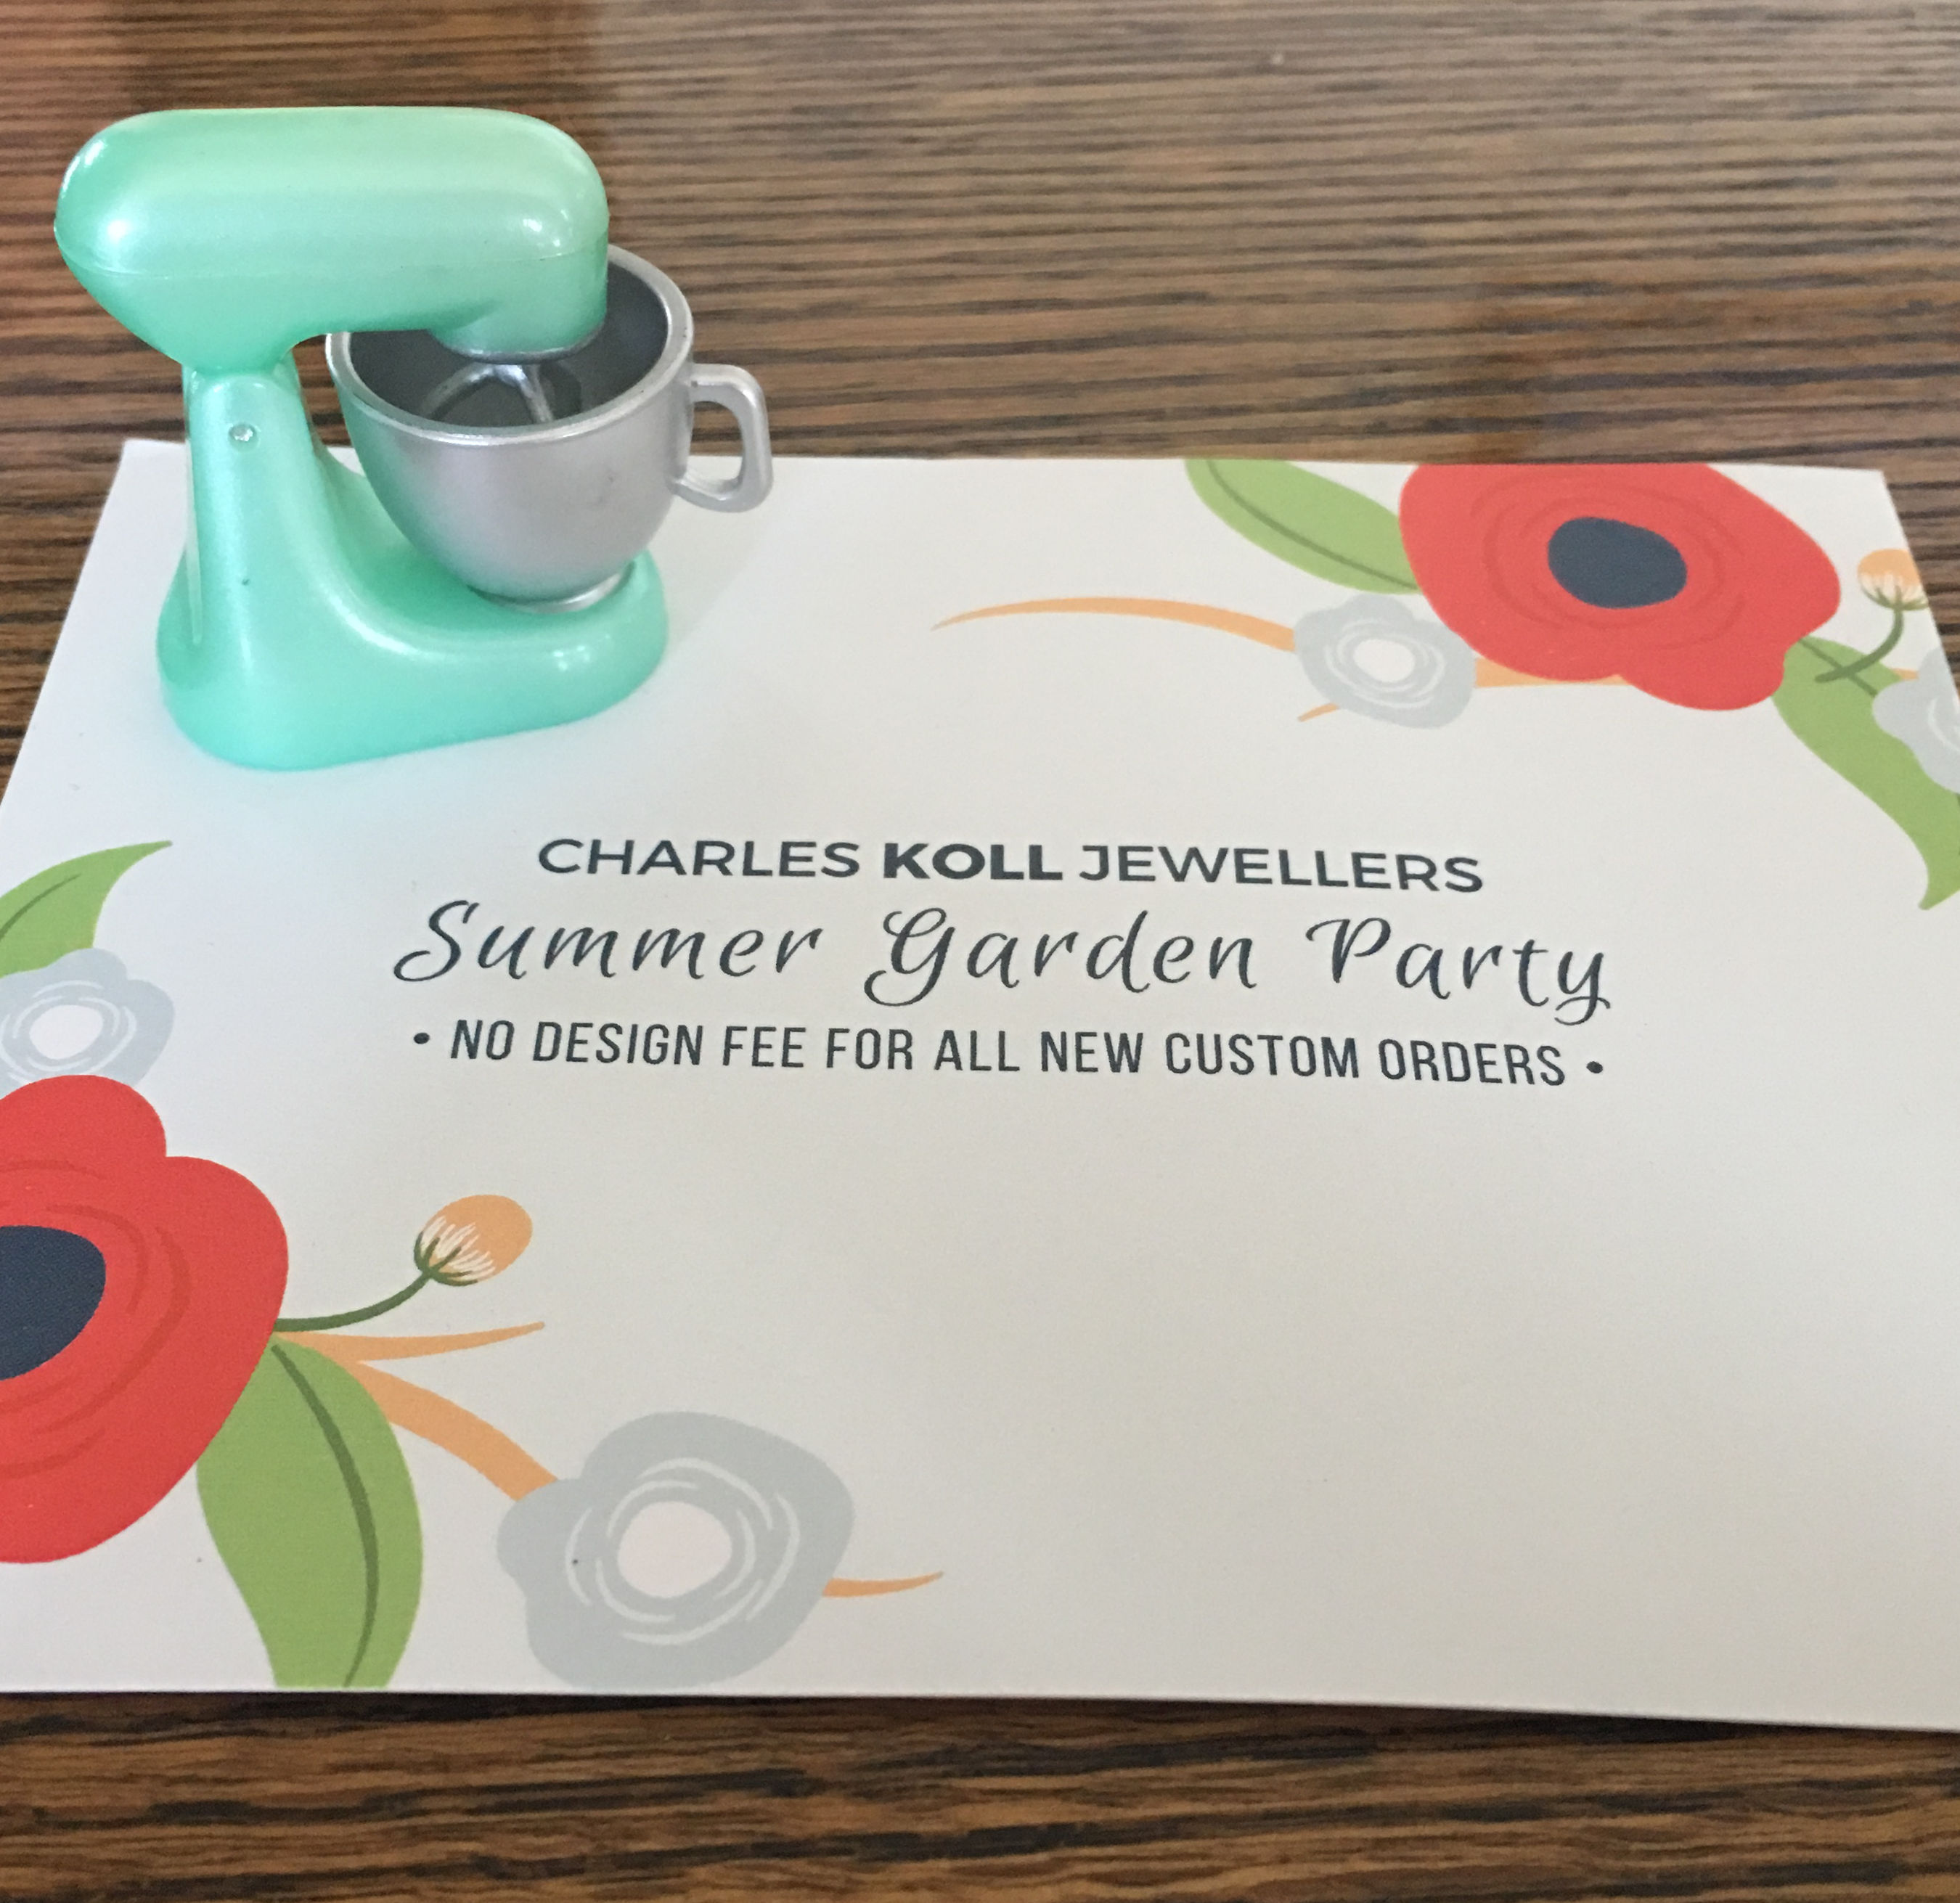 Charles Koll Jewelers Summer Garden Party